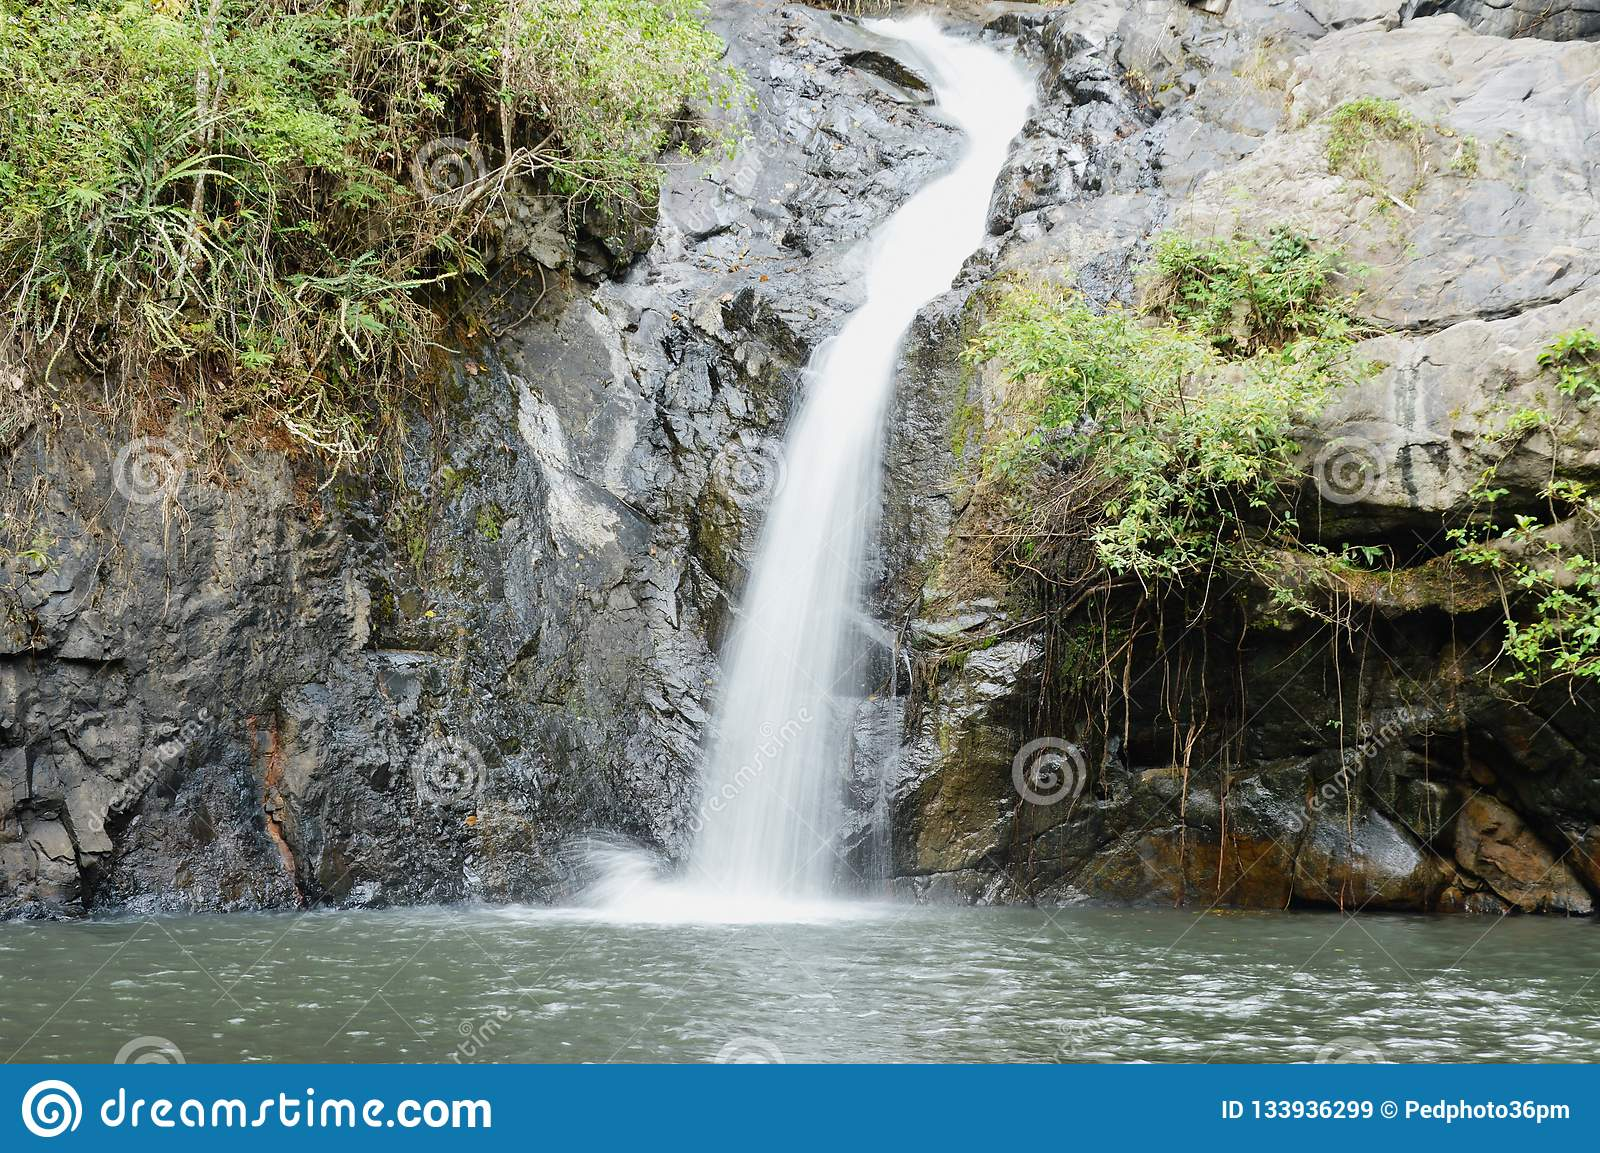 Big waterfall in forest at Jetkod-Pongkonsao travel location on Thailand